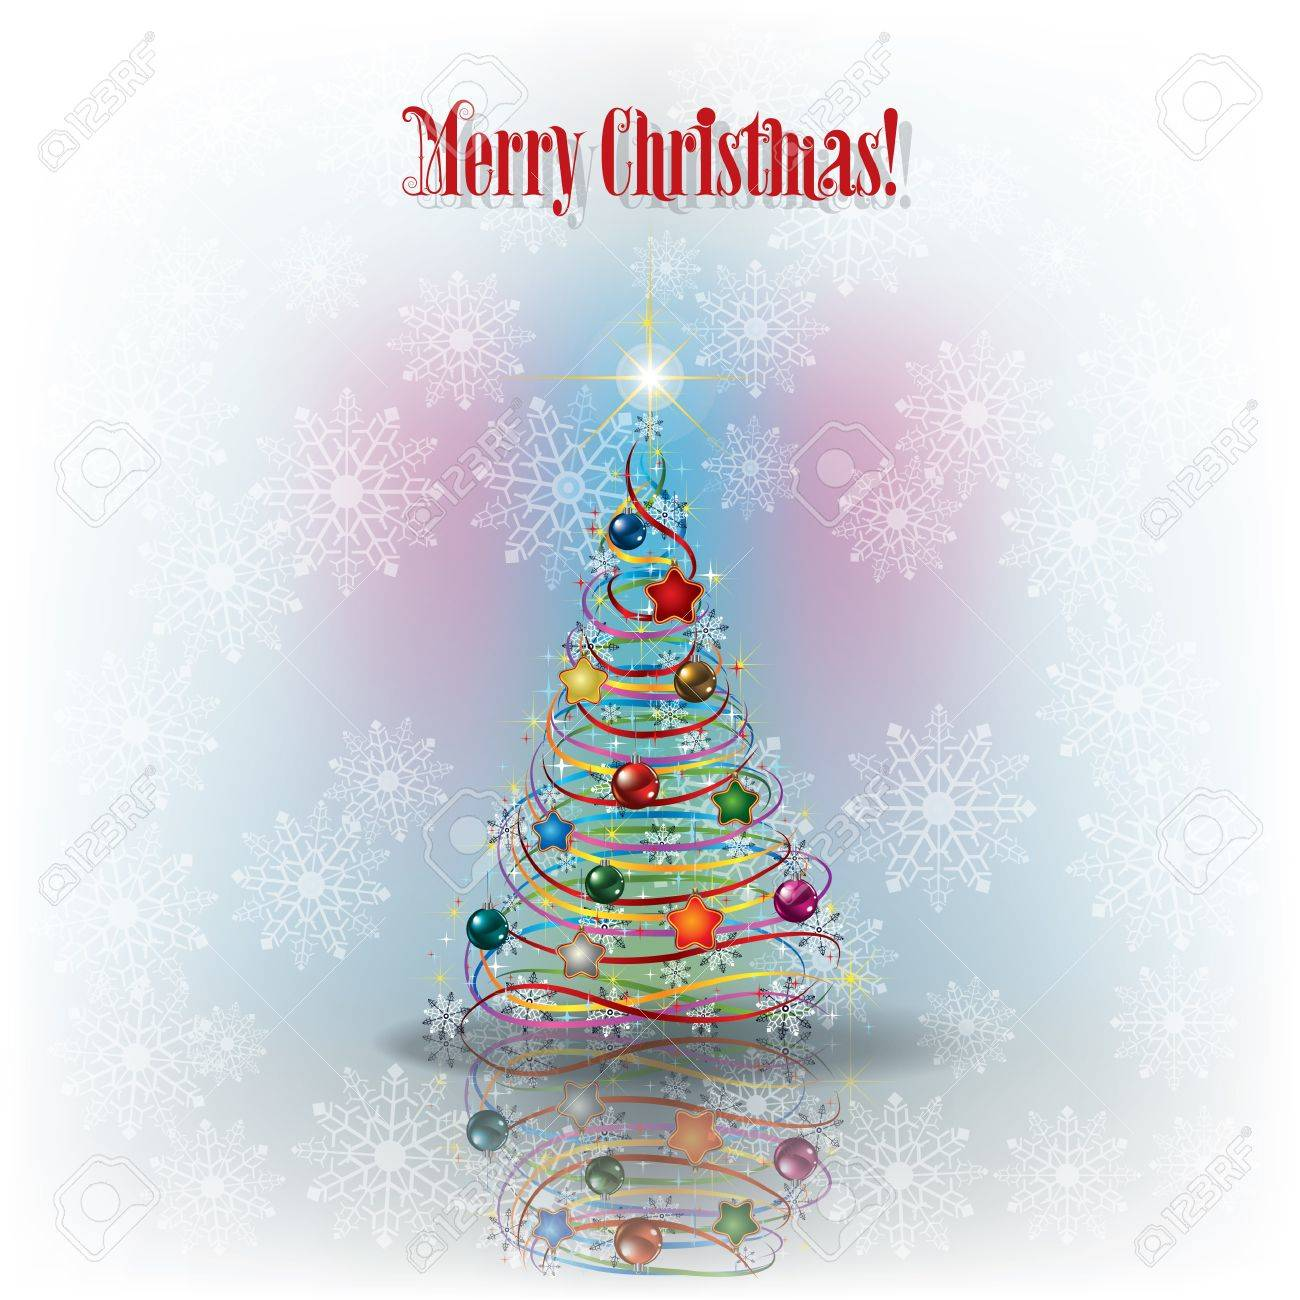 Christmas greeting with tree and snowflakes and text Merry Christmas Stock Vector - 15160868